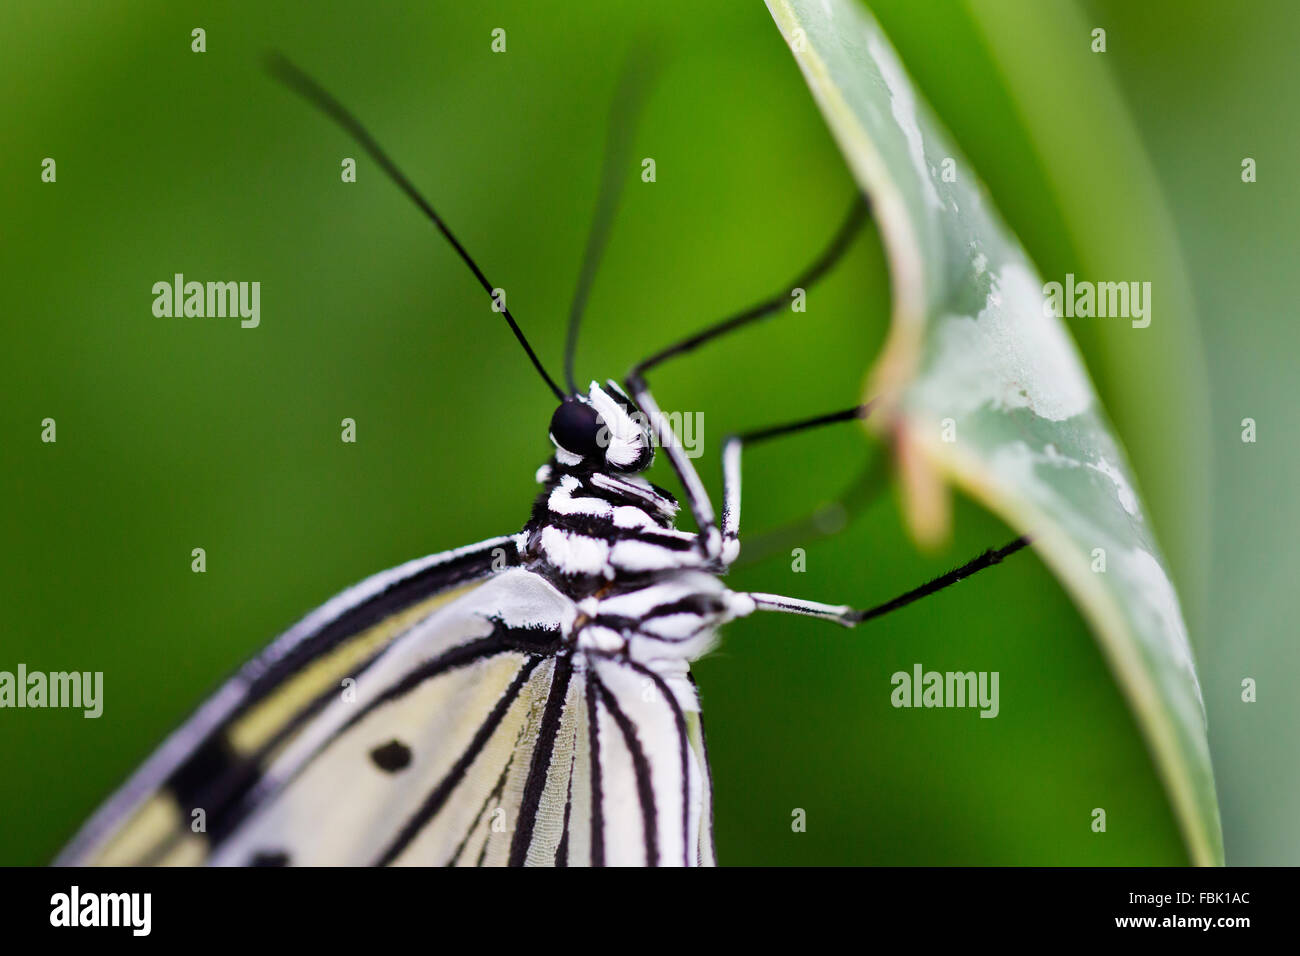 Wisley, Surrey, UK. 17th Jan, 2016. Exotic butterflies ( the Tree Nymph butterfly pictured) enjoy the hot weather - Stock Image